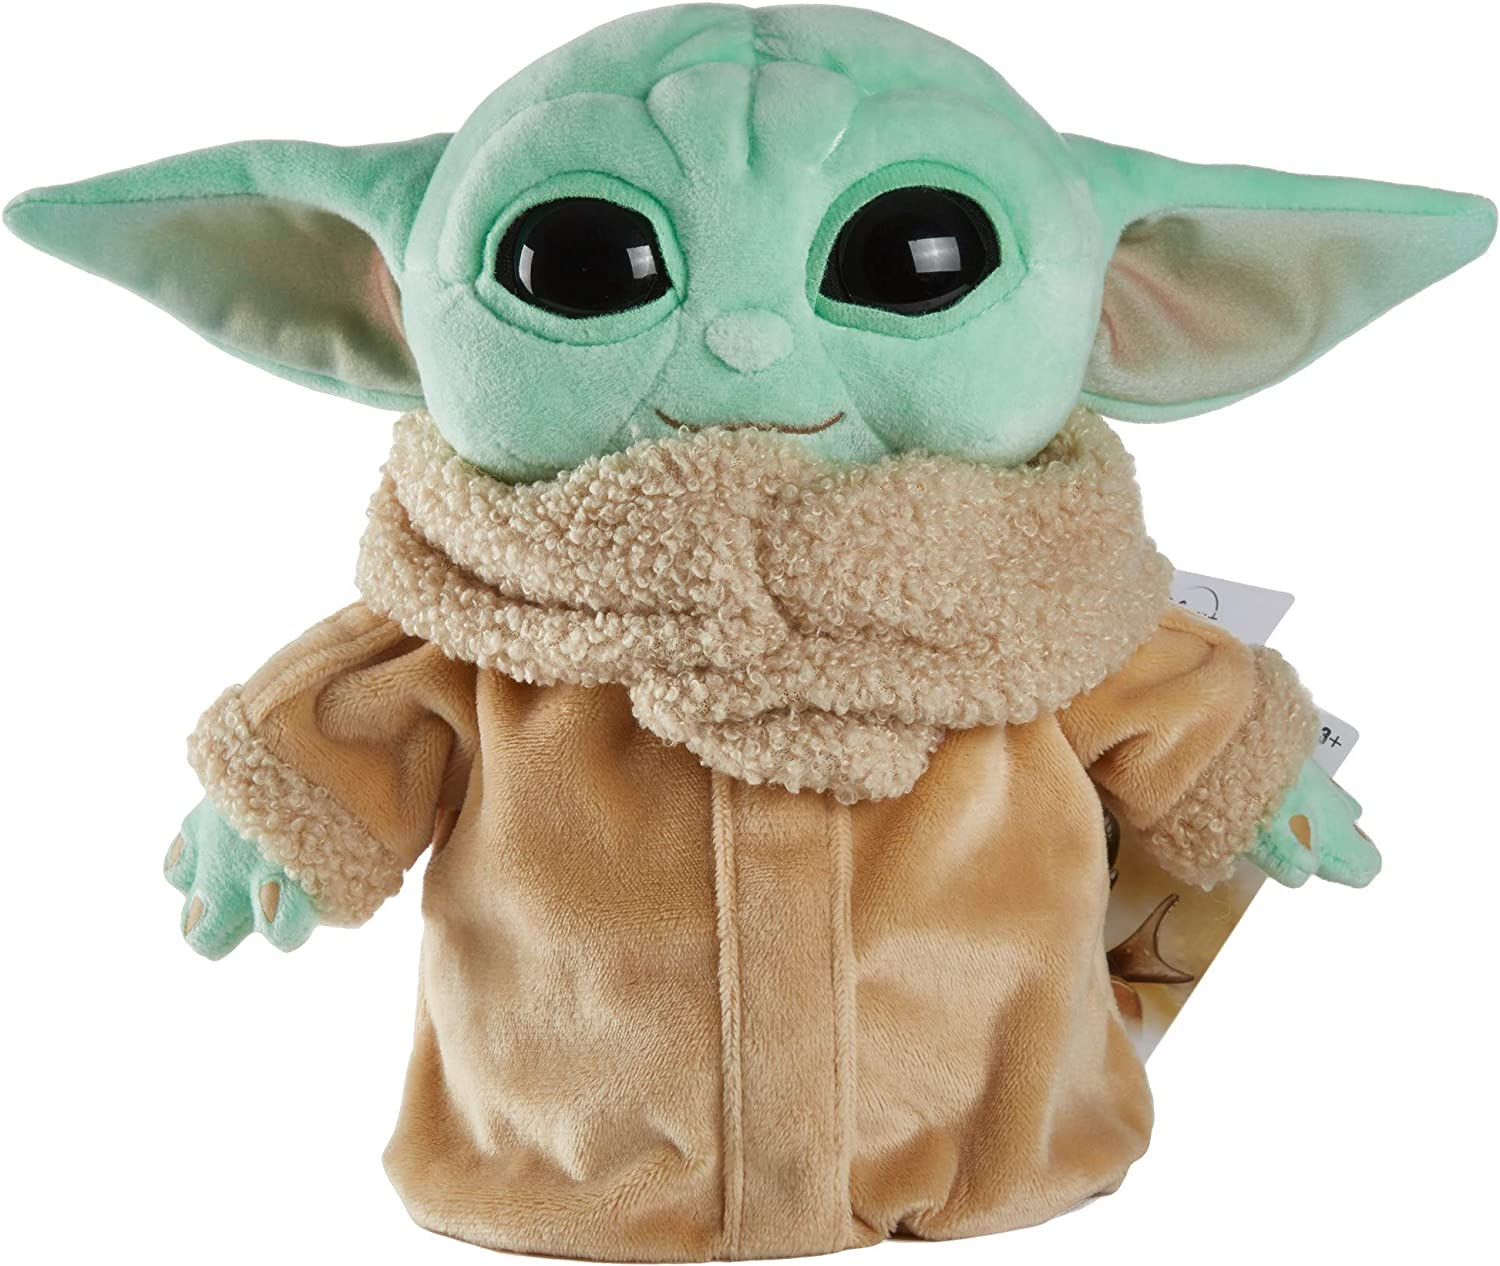 Mattel Star Wars The Child Plush Toy, 8-in Small Yoda Baby Figure from The Mandalorian, Collectible Stuffed Character for Movie Fans of All Ages, 3 and Older, Green, Model Number: GWH23